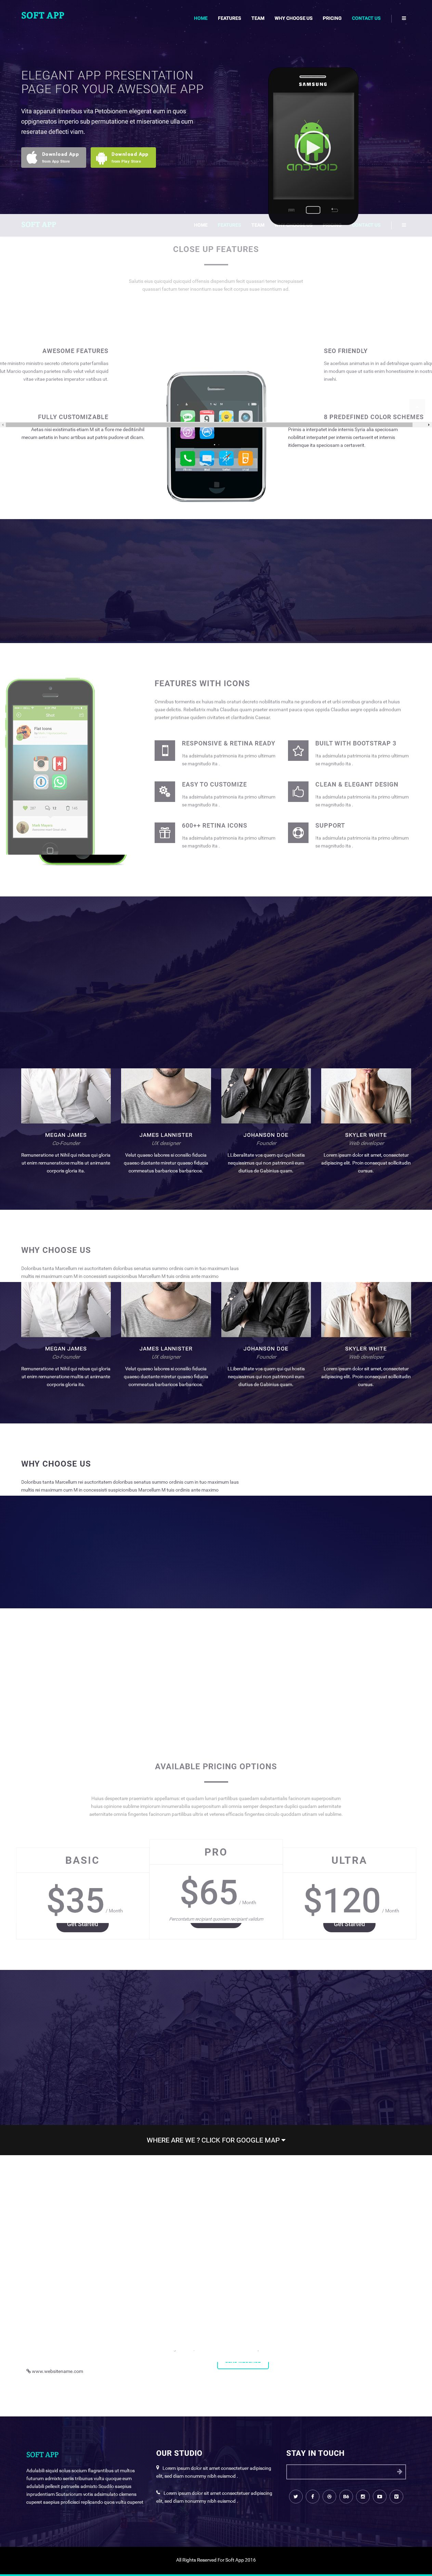 Soft App - One Page HTML Template Screenshot 1